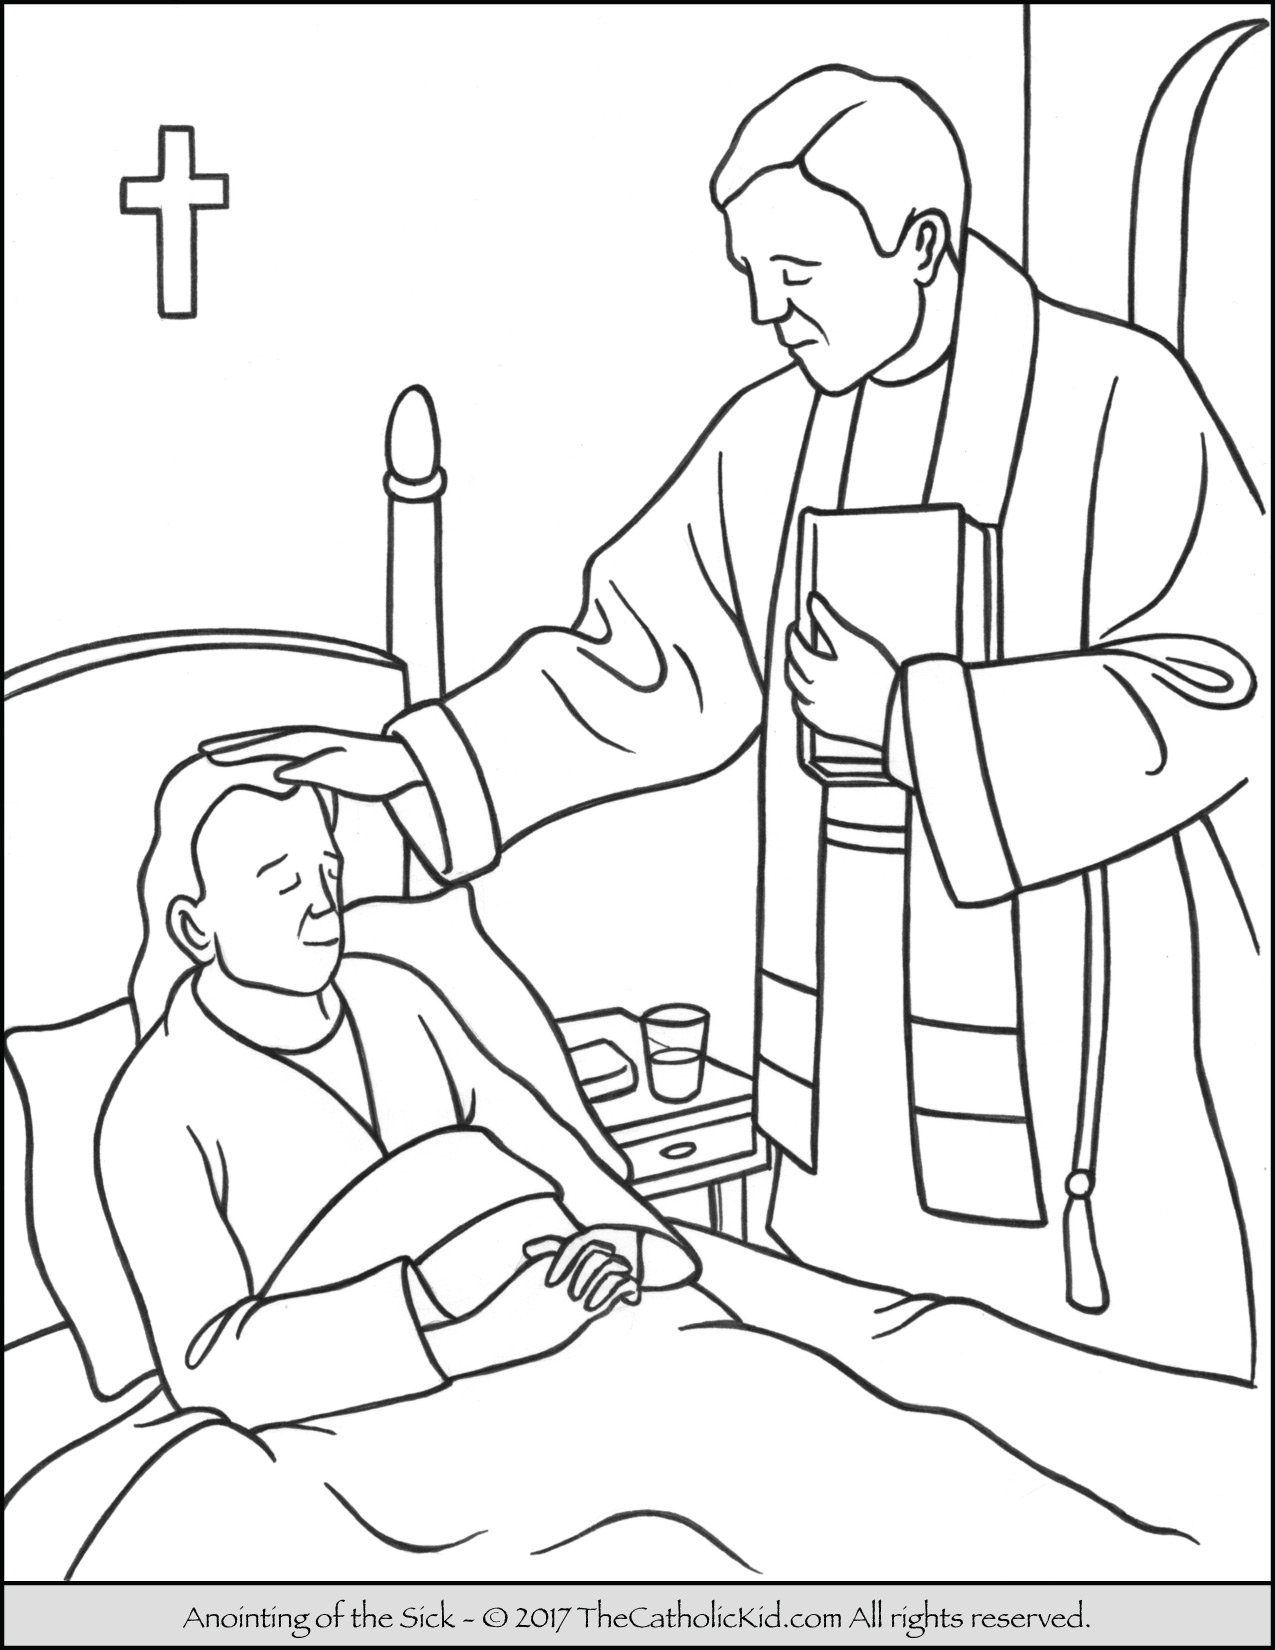 Sacrament Anointing Sick Coloring Page